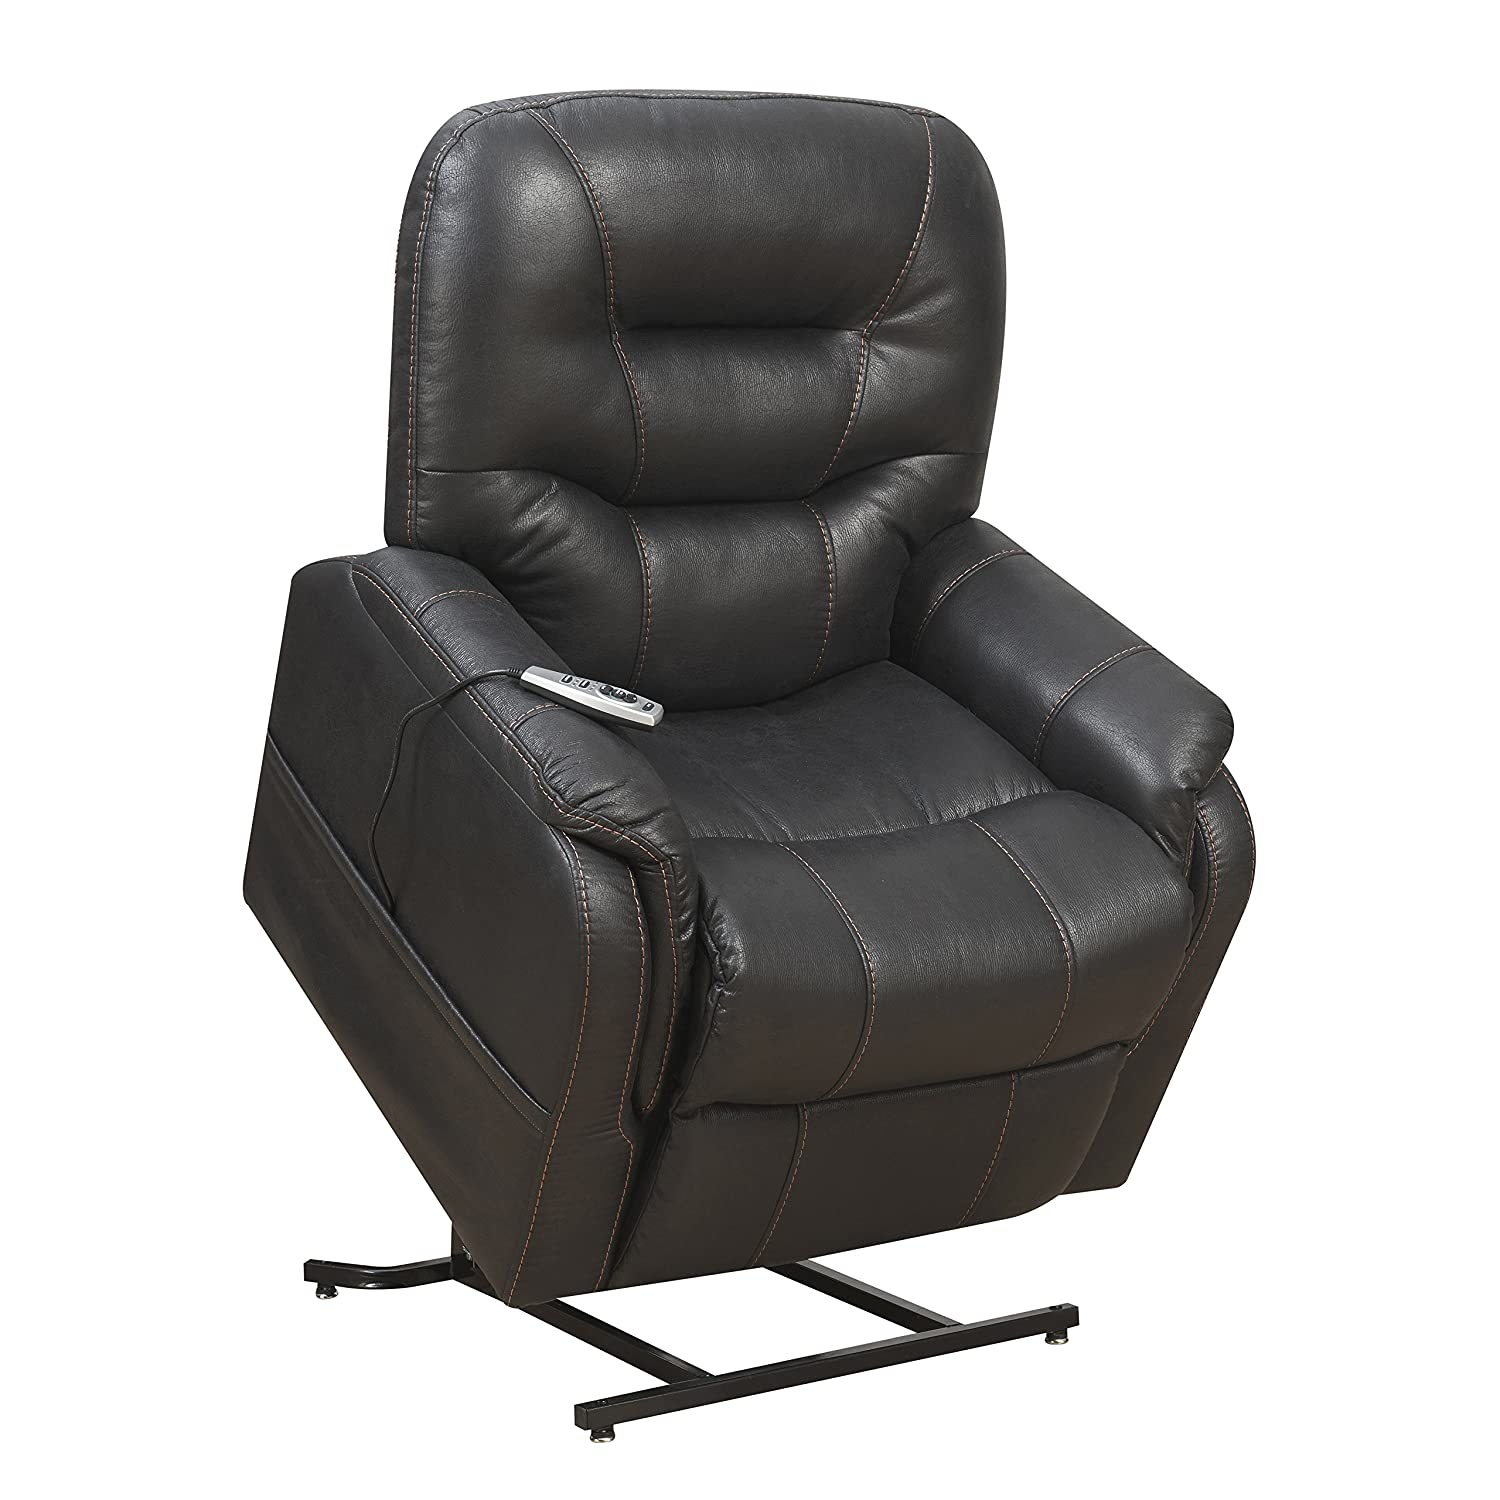 Amazon Pulaski Heat Massage Lift Chair in CHARCOAL black